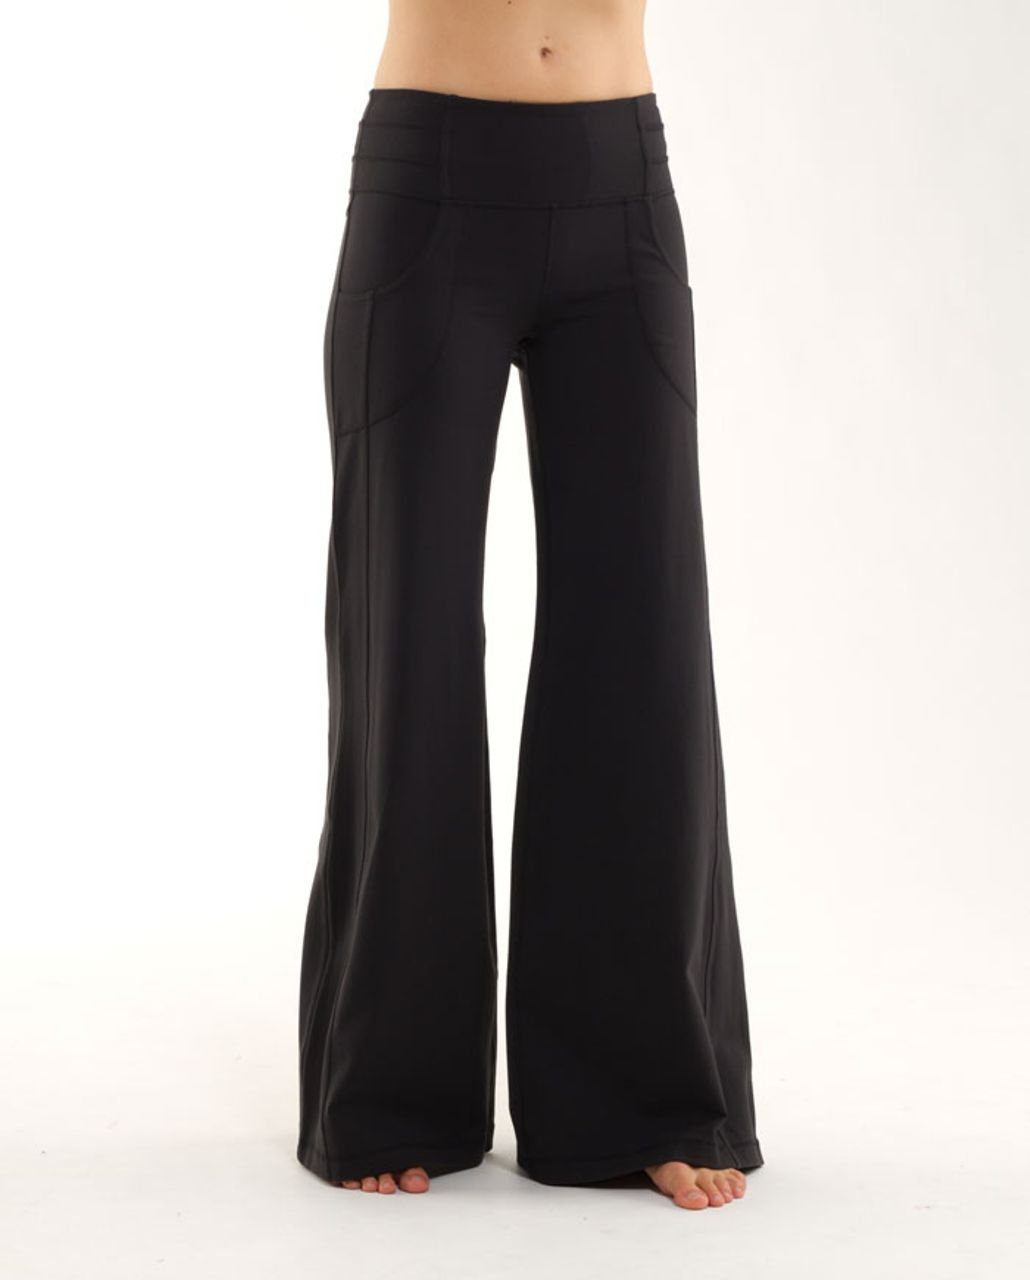 Lululemon Dance Fitness Pant - Black